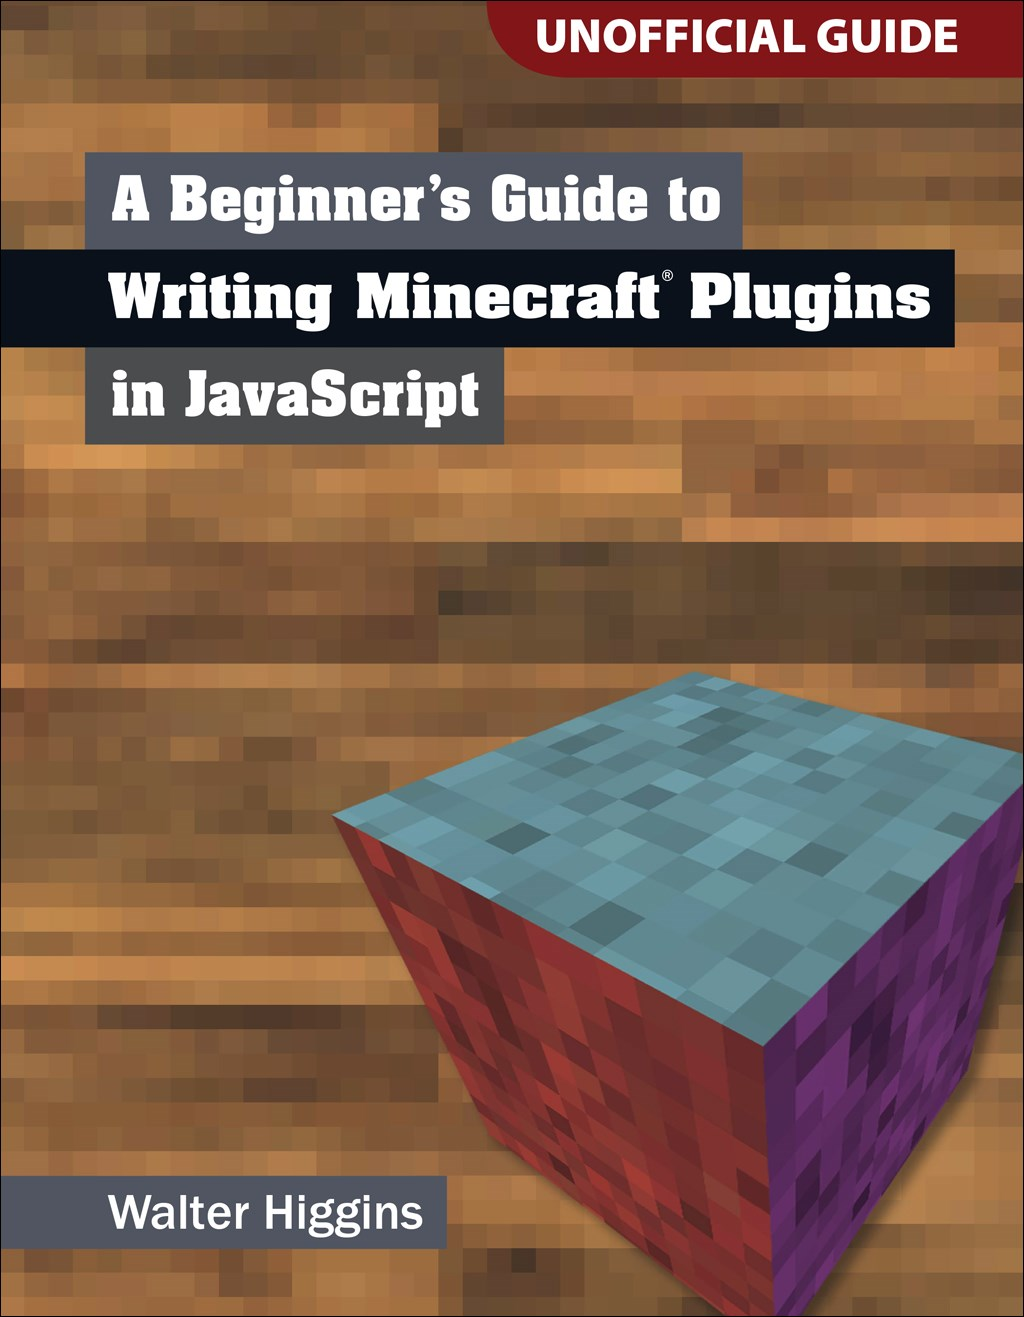 A Beginner's Guide to Writing Minecraft Plugins in JavaScript